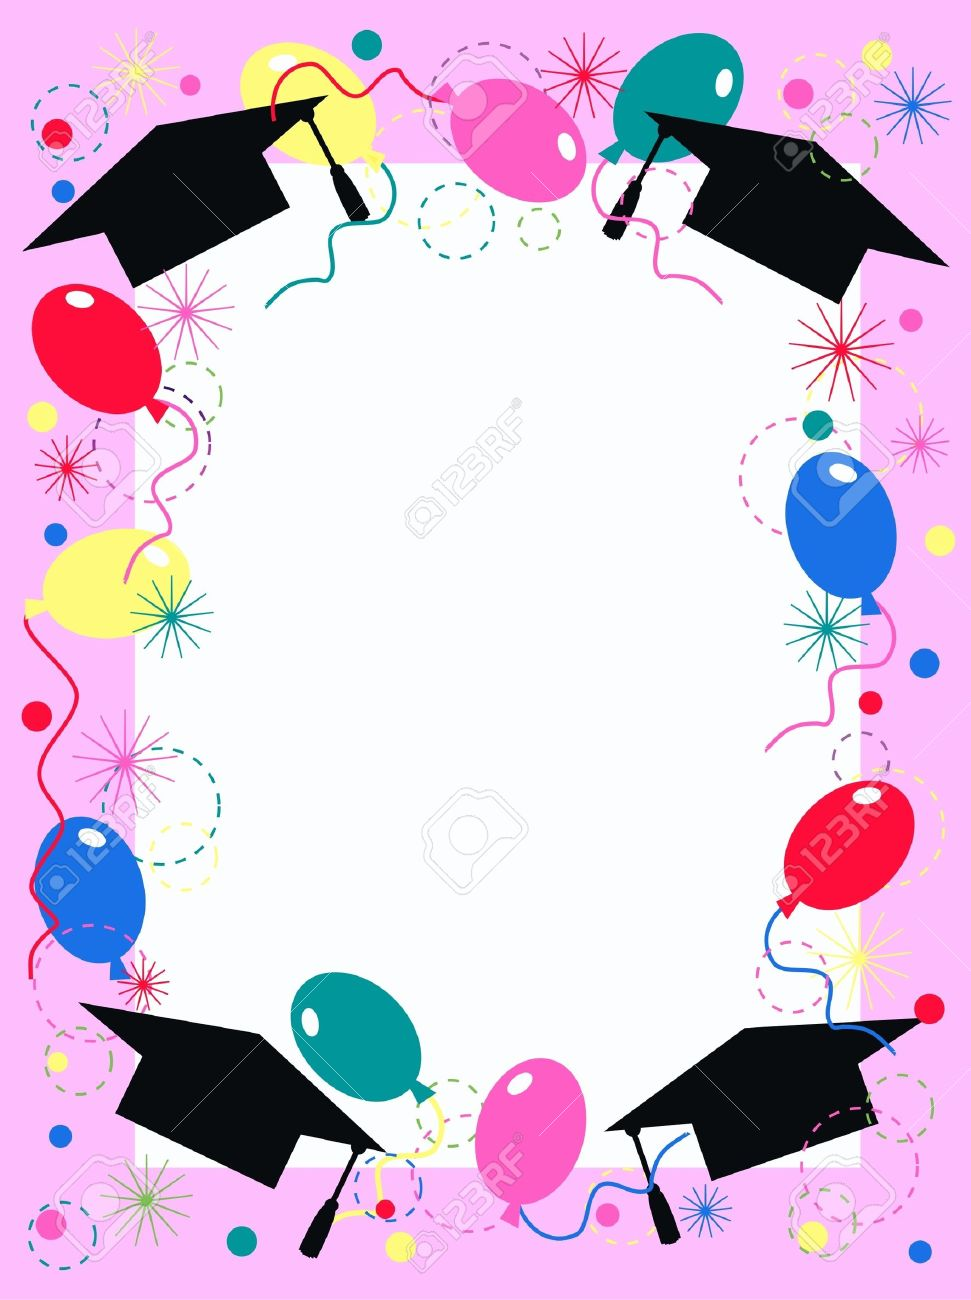 Graduation invitation or celebration card royalty free cliparts graduation invitation or celebration card stock vector 10787418 stopboris